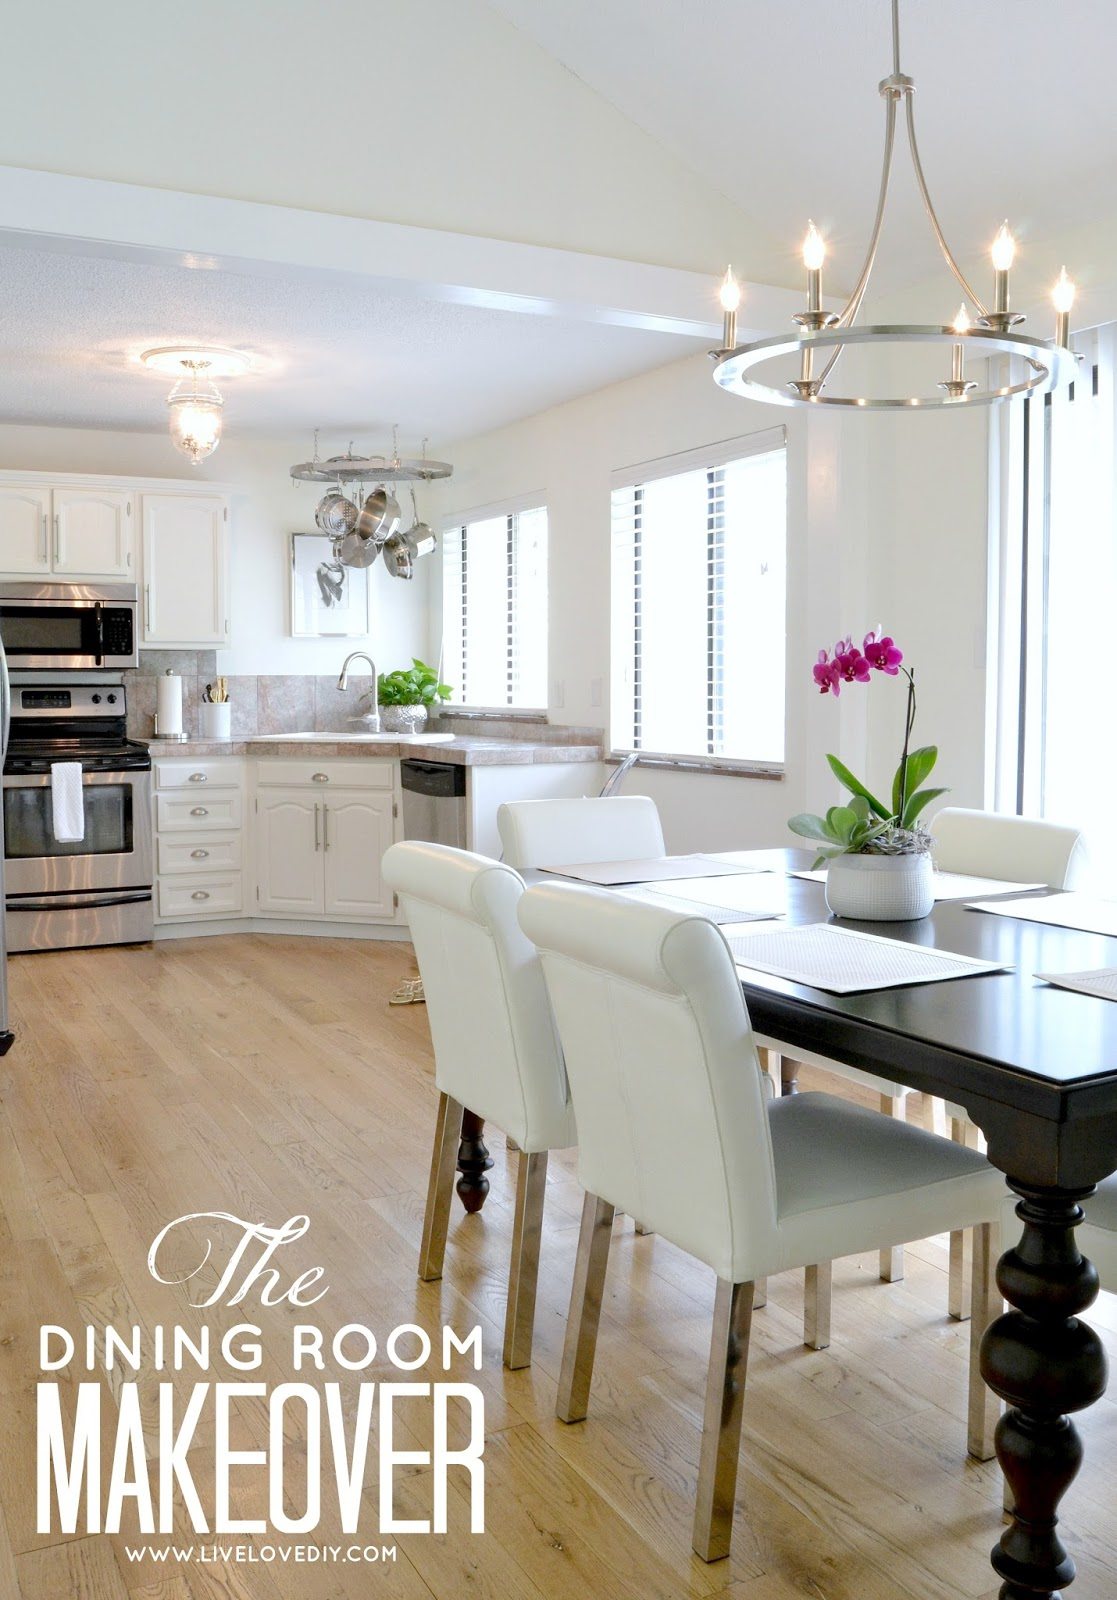 DIY Budget Dining Room Makeover Ideas Love This Post So Many Practical On